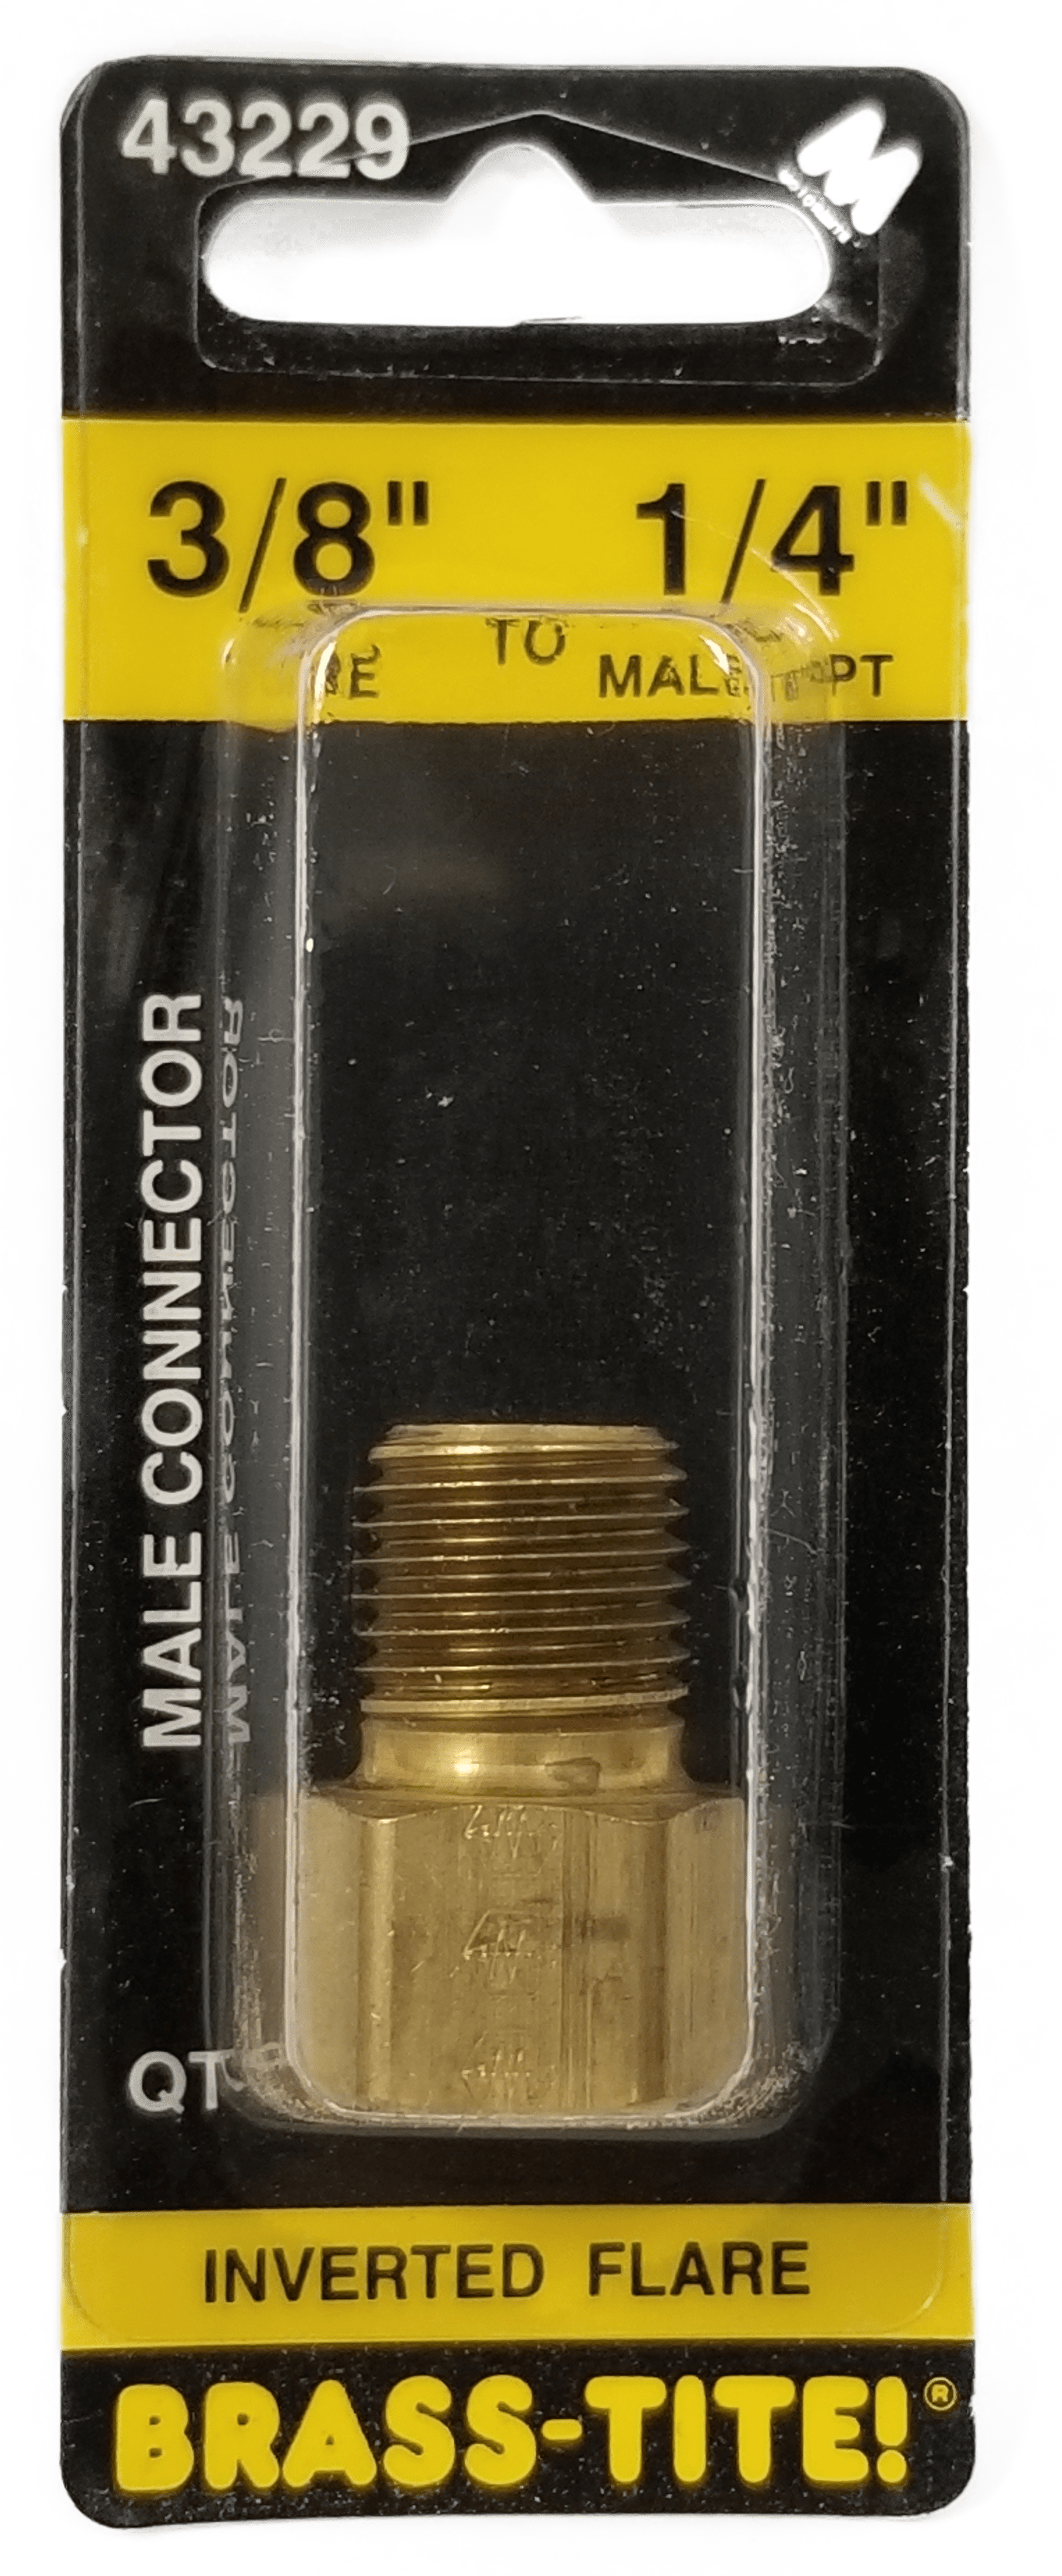 07443229 - Inverted Flare Connector (Brass)